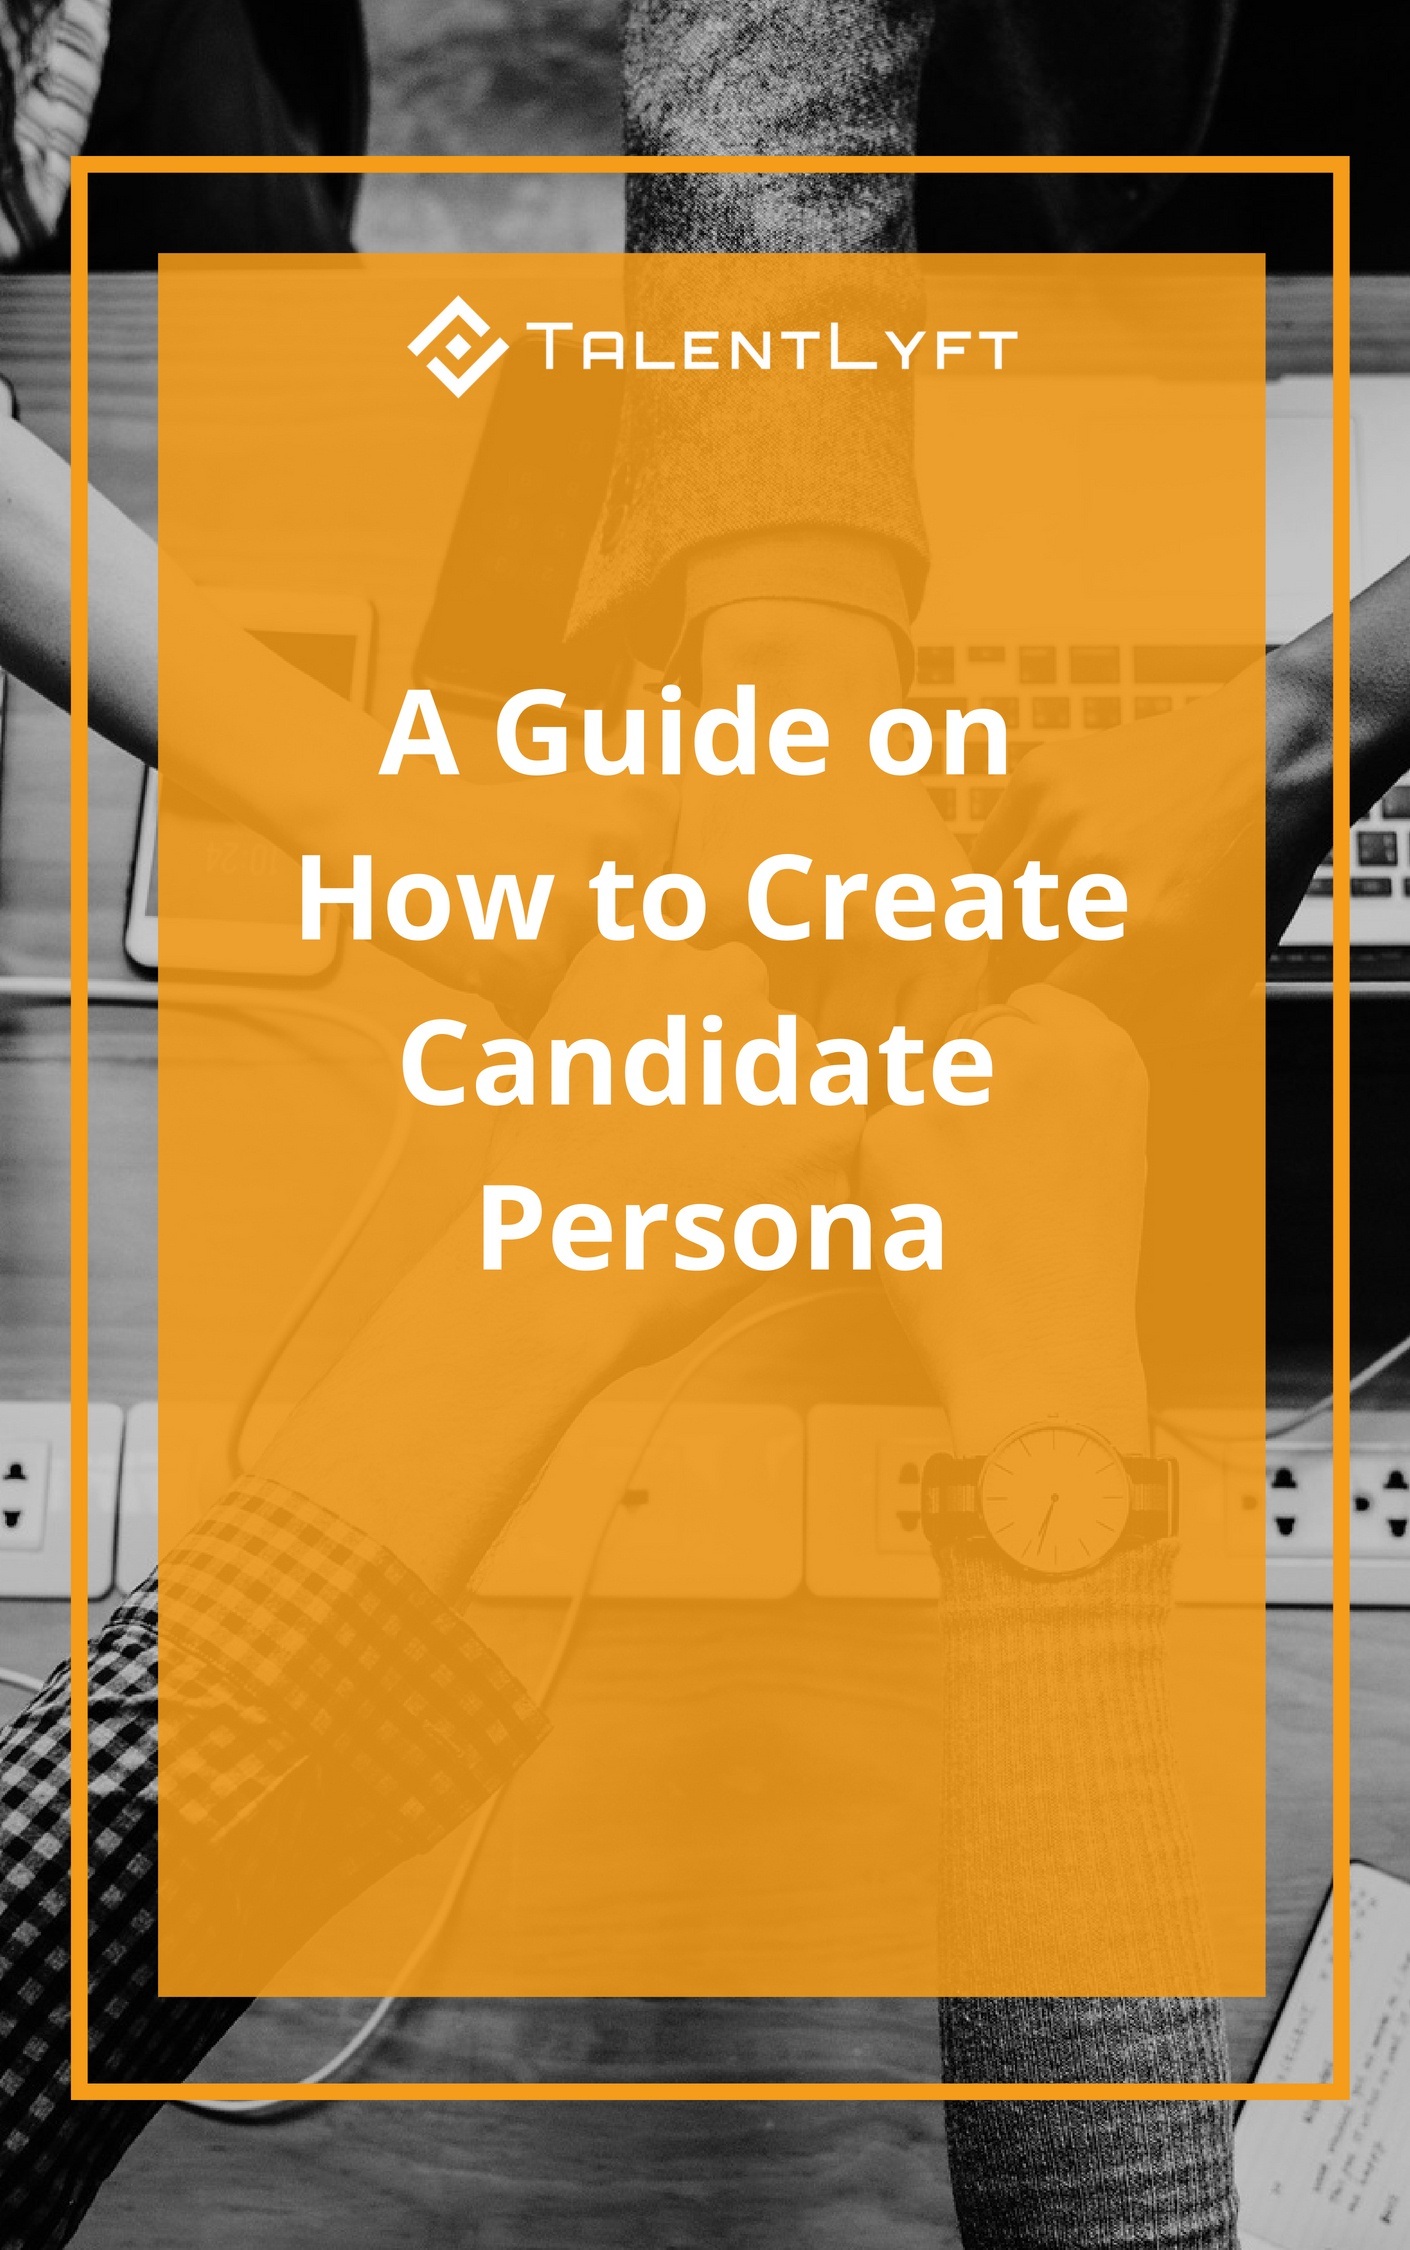 A Guide on How to Create Candidate Persona.jpg